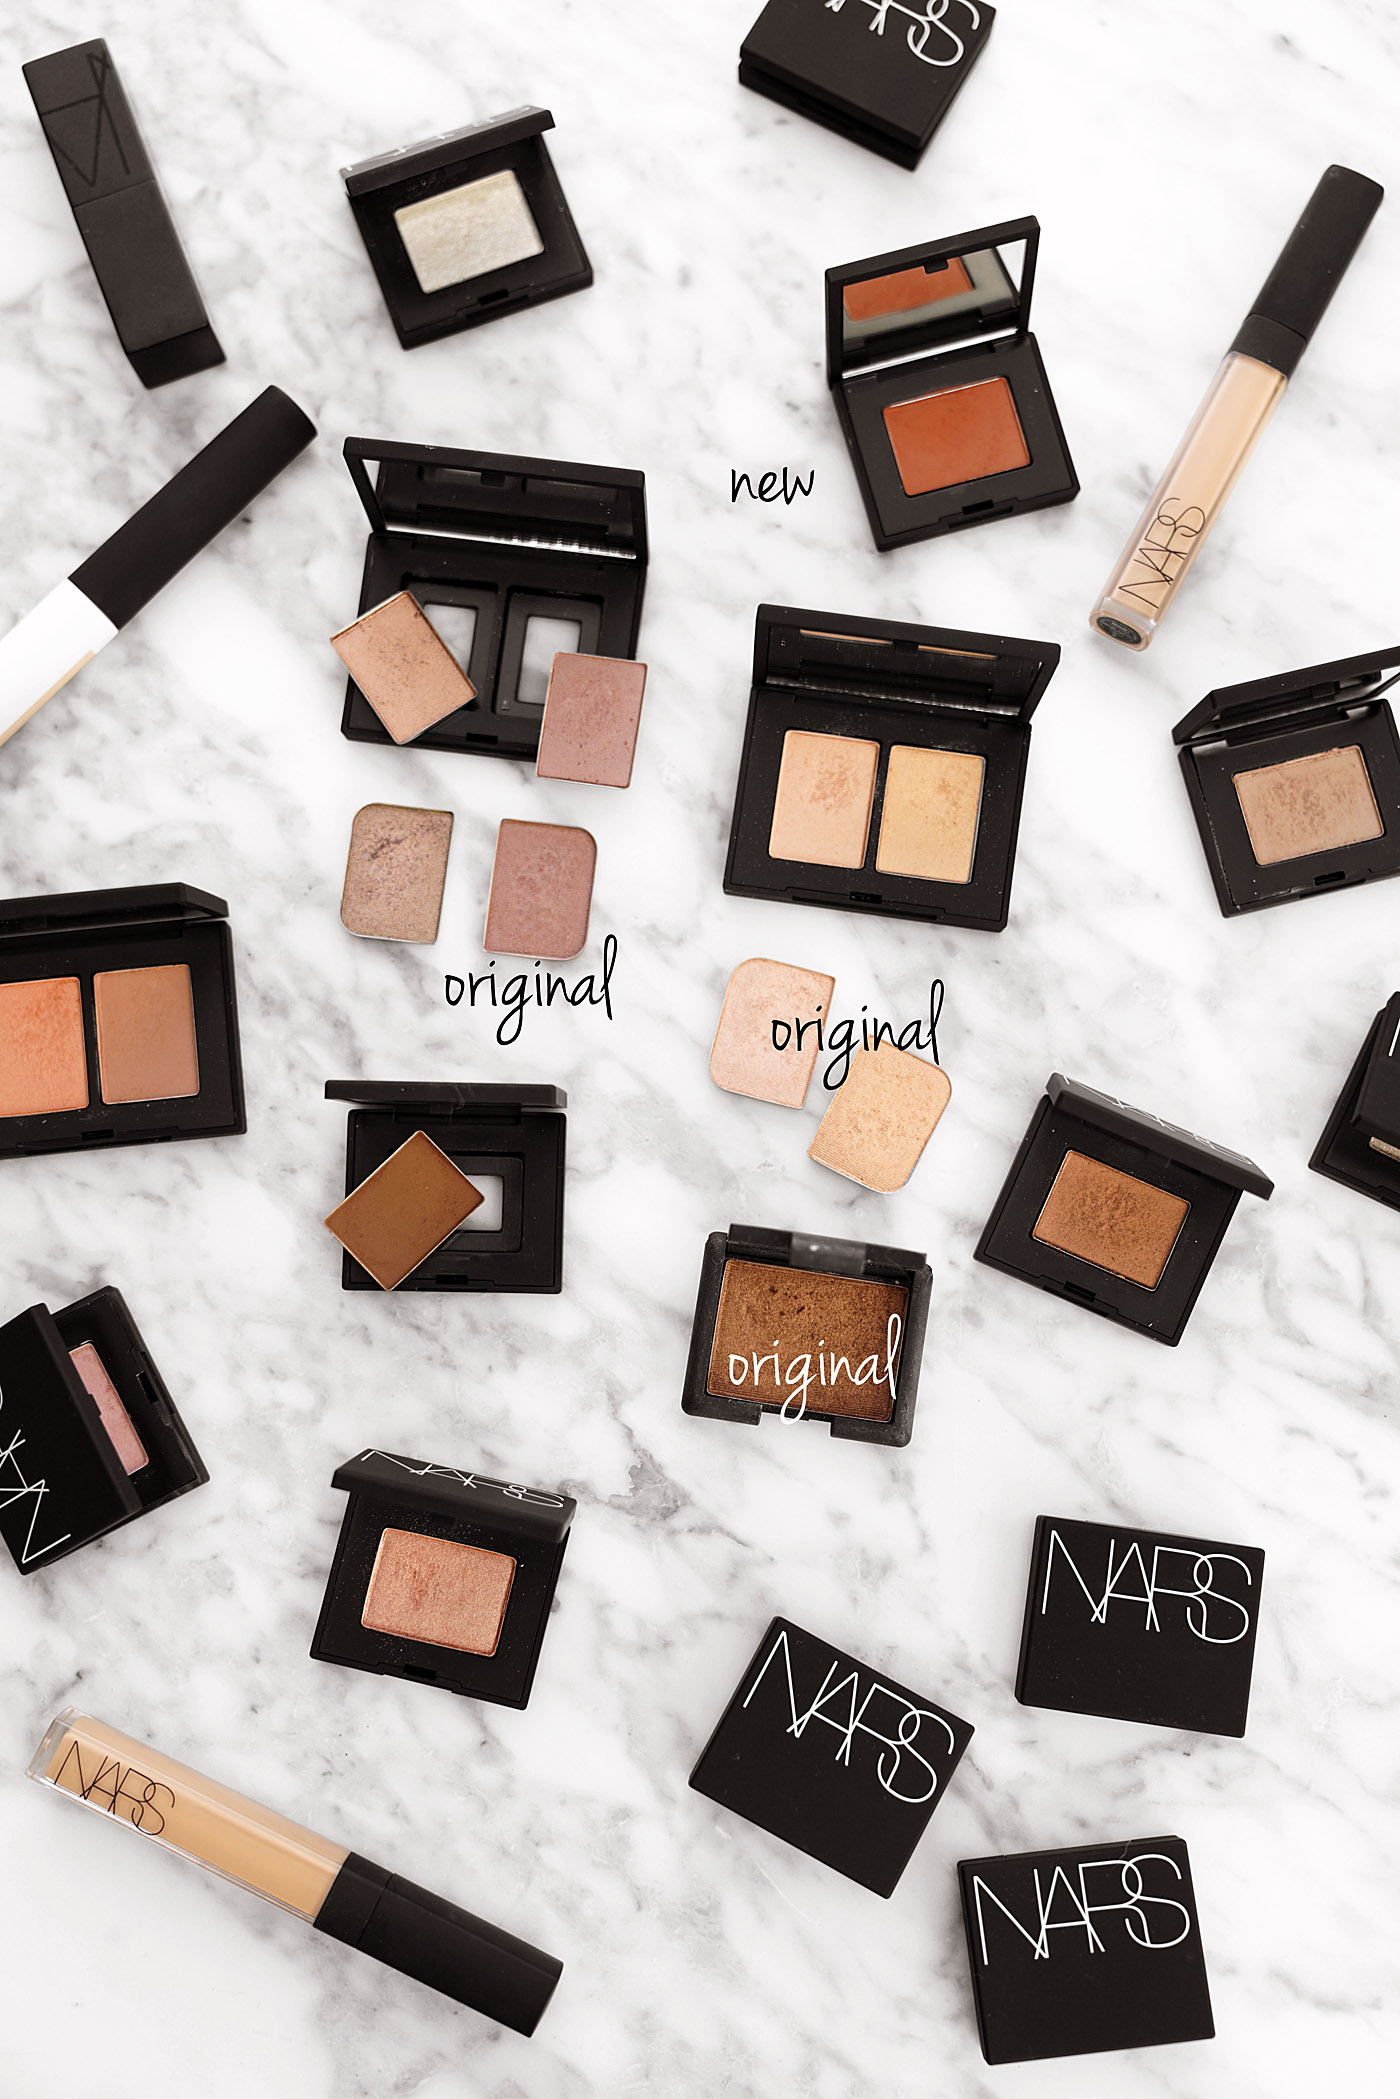 NARS Eyeshadow Single et Duo relancent par rapport aux casseroles originales